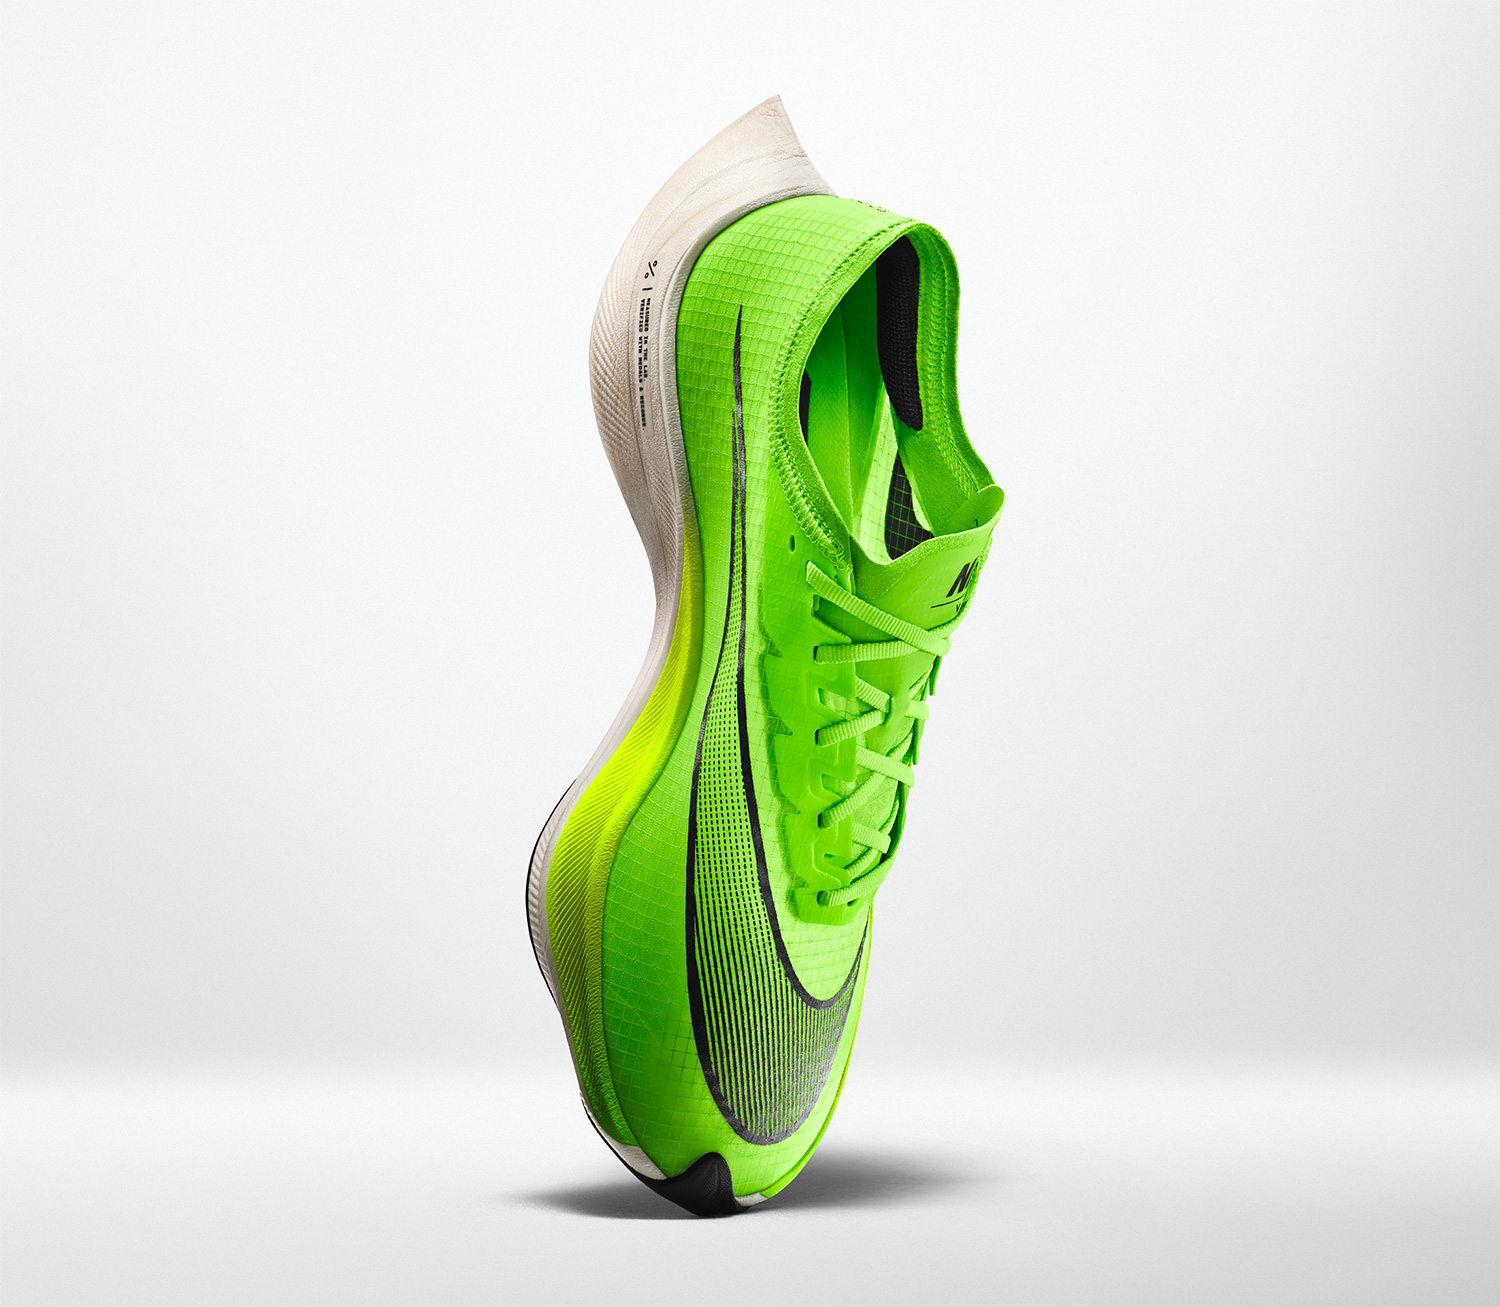 Nike Introduces Neon Green Zoom Series Shoes at werd.com